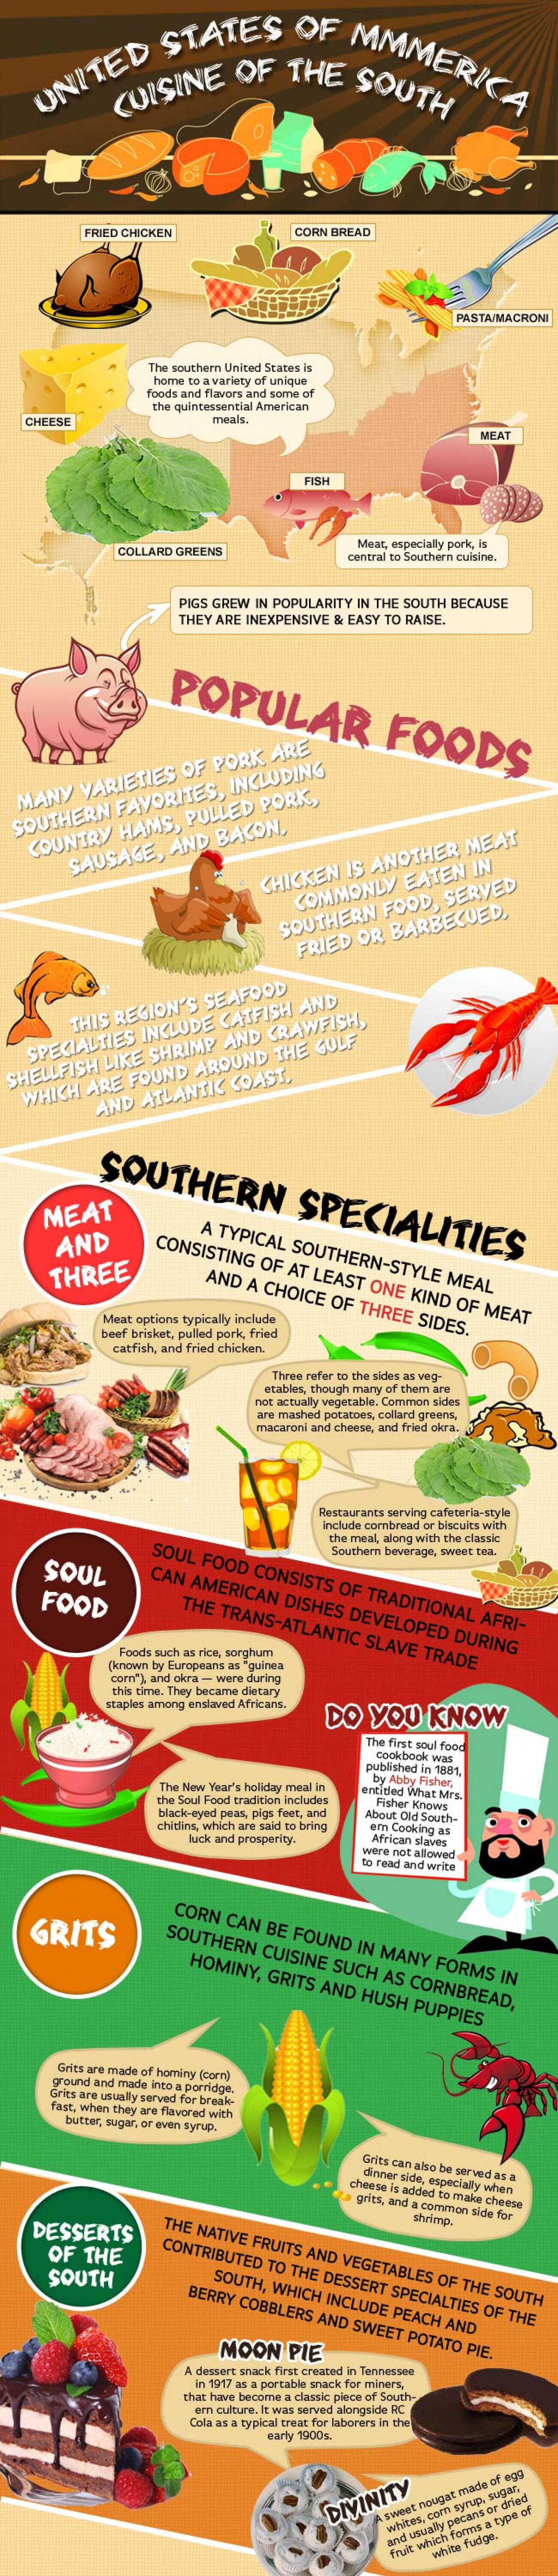 Cuisine of Texas Infographic